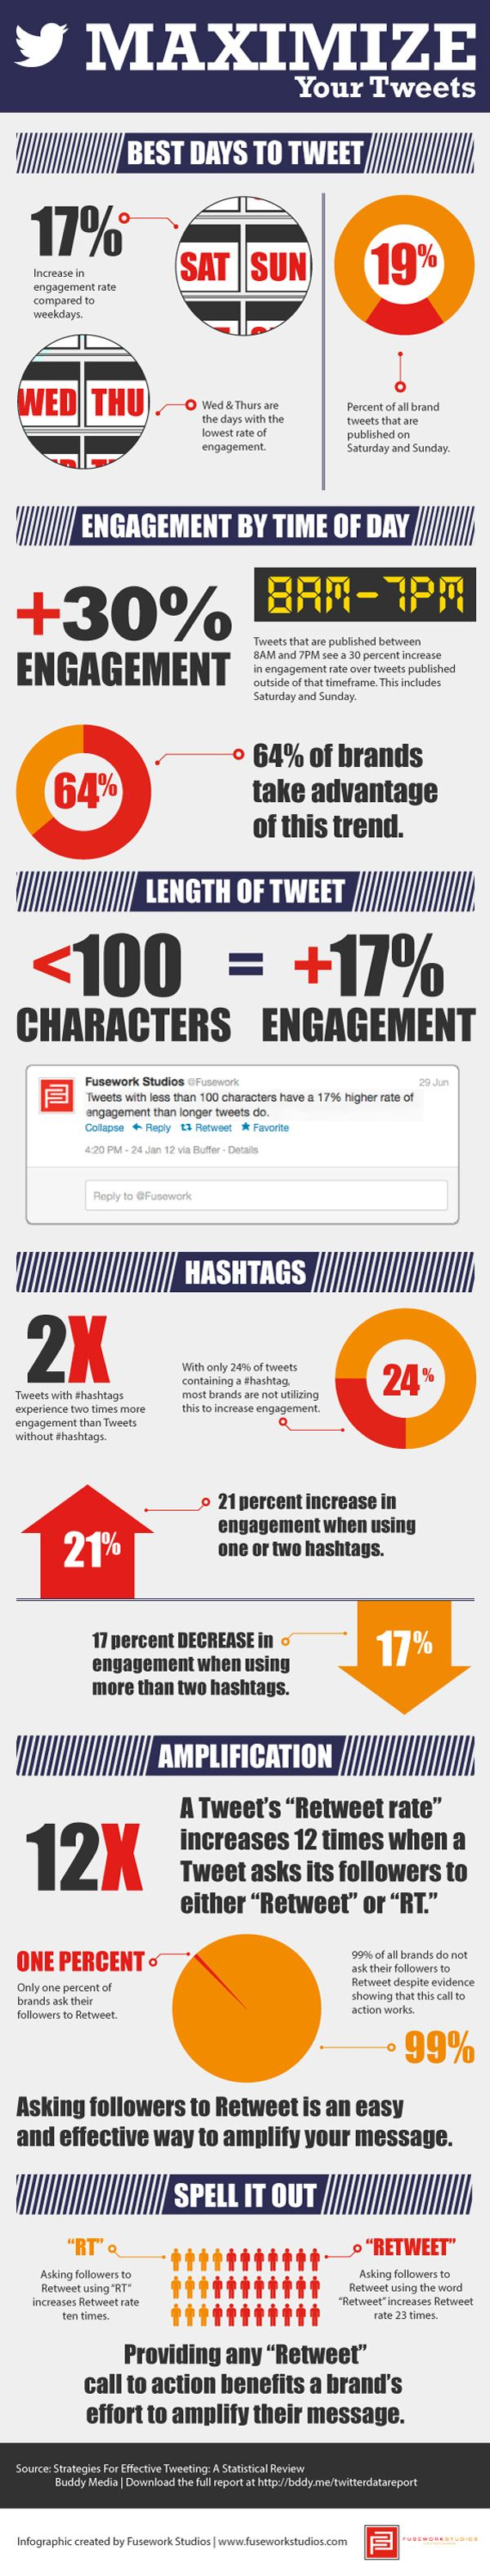 Maximize Your Tweets - Tips For Optimization [INFOGRAPHIC]